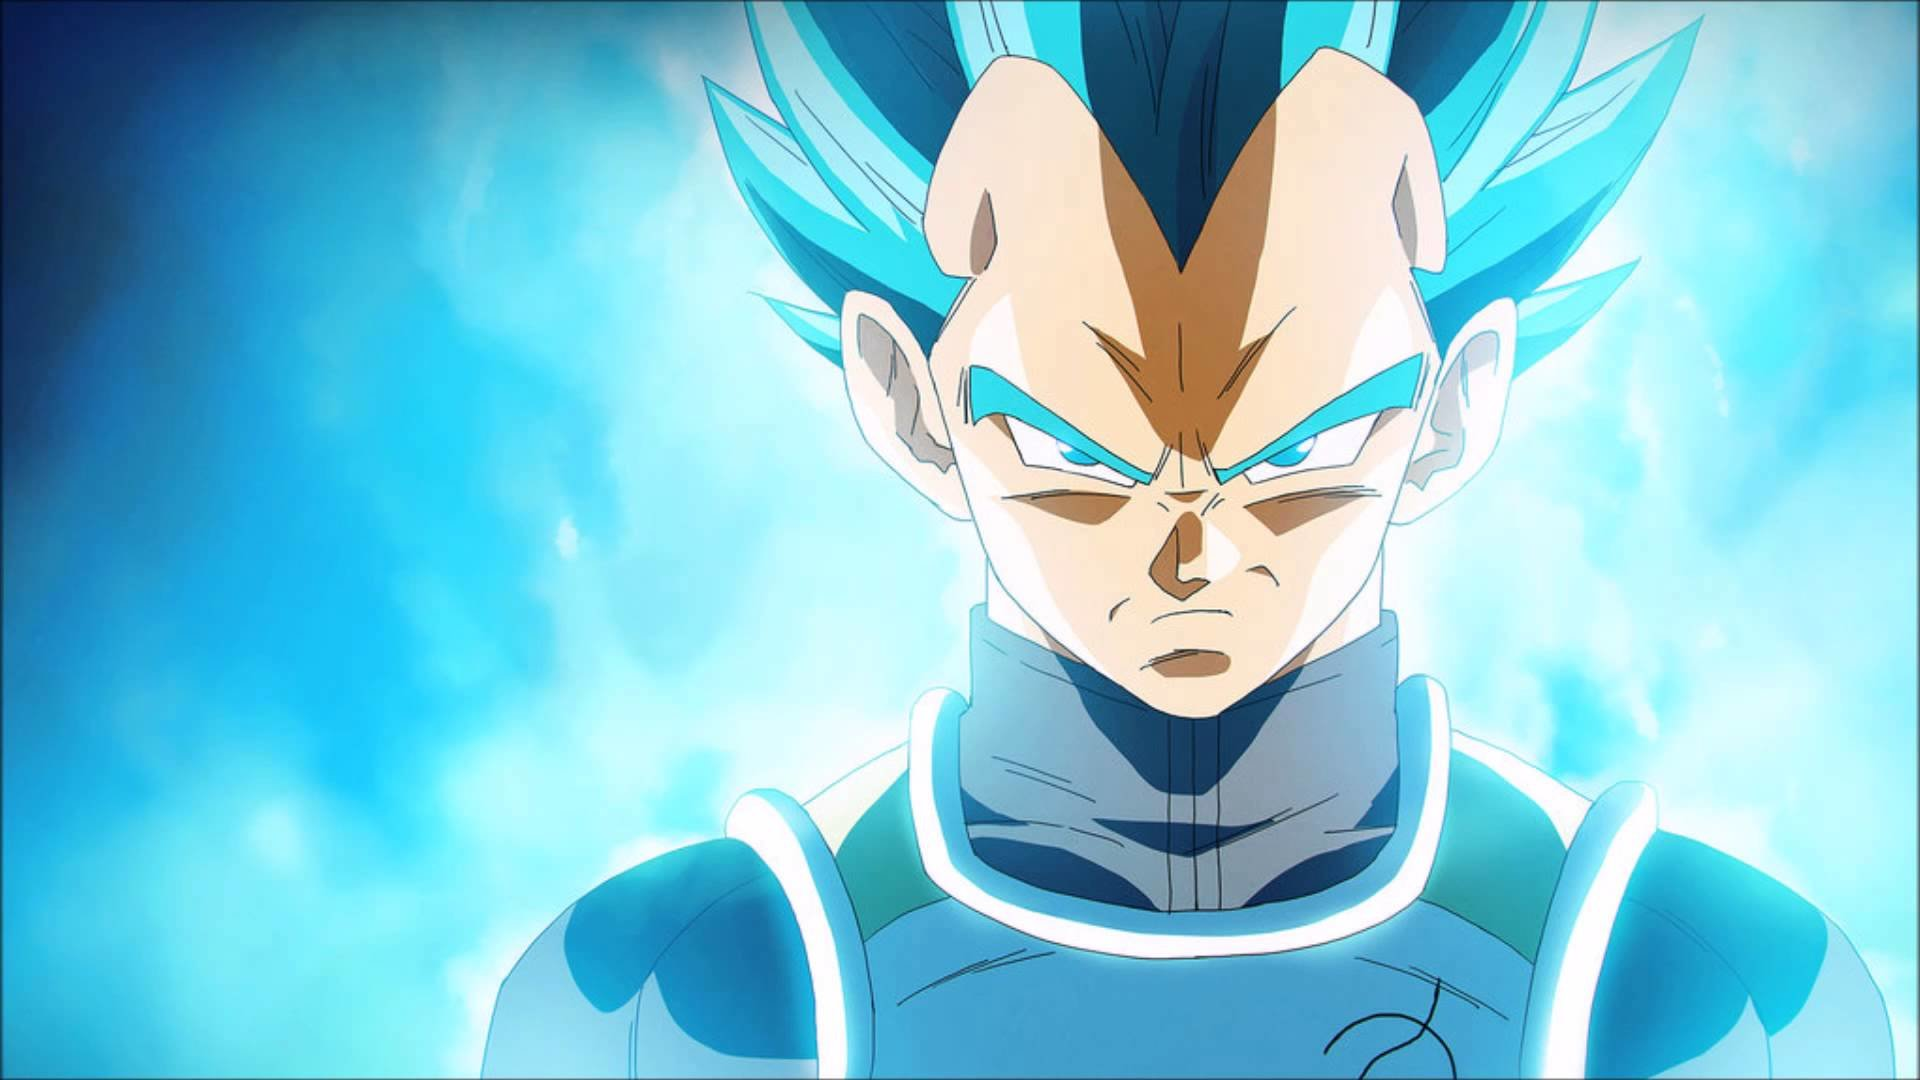 Awesome Dragon Ball Super free wallpaper ID:242411 for full hd 1920x1080 desktop